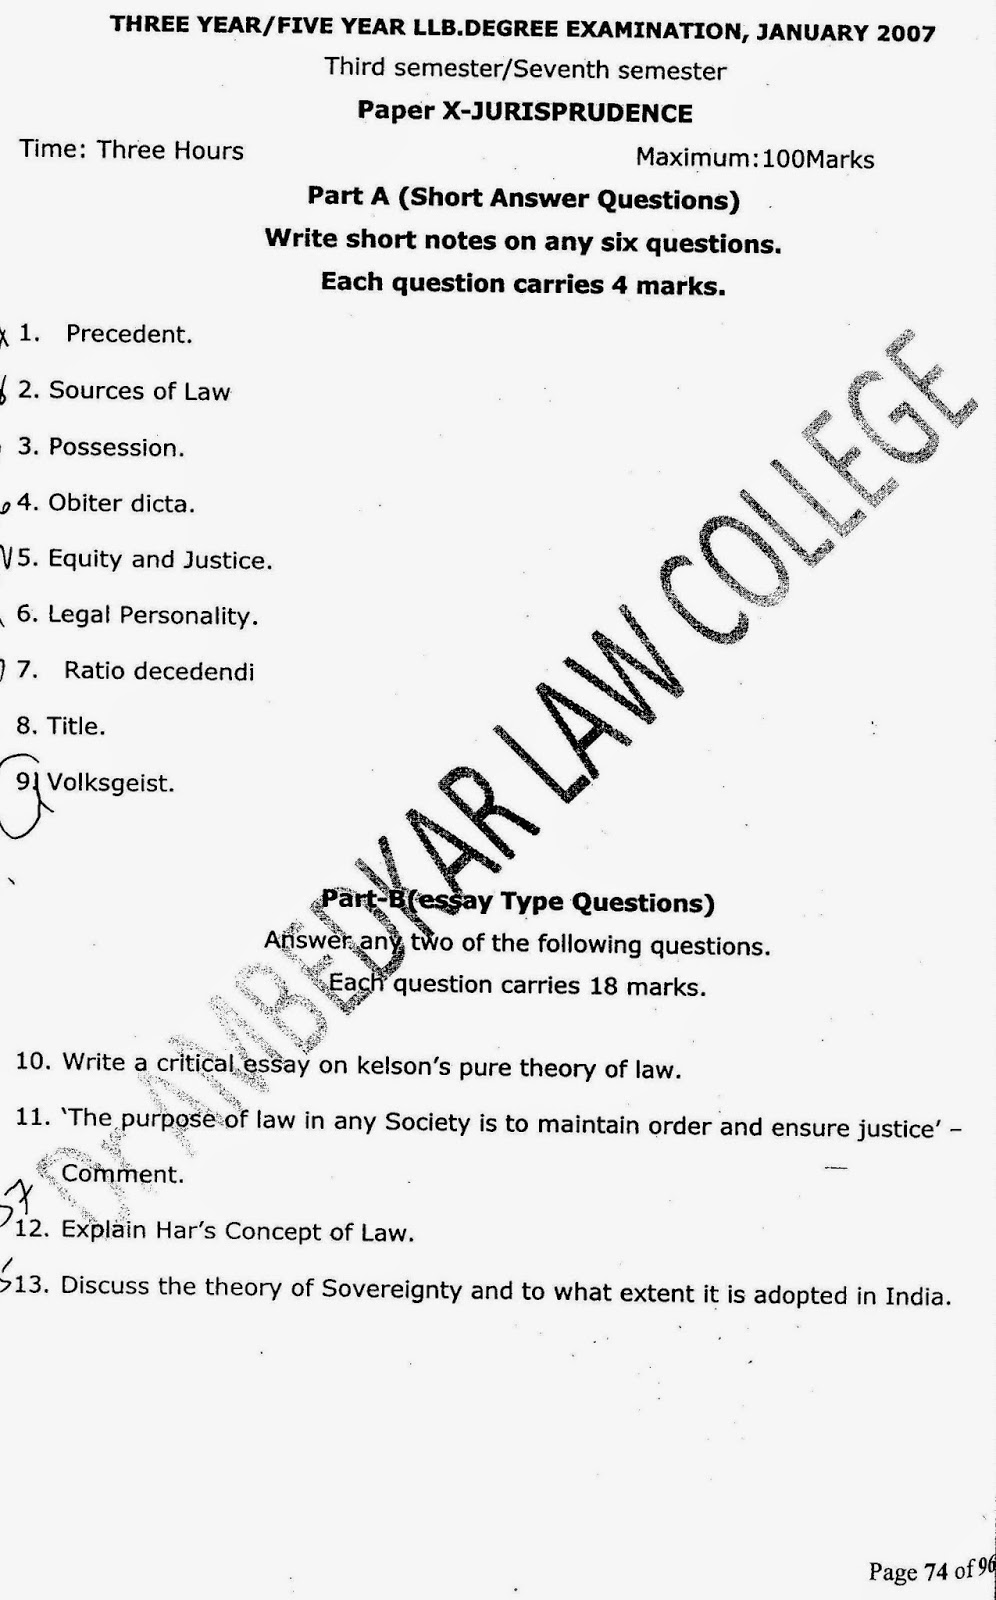 High School Narrative Essay Examples Lawdetails Pot In   Semester Jurisprudence S V Jurisprudence  Year Llb   Page Search Essays In English also Buy Essay Papers Jurisprudence Essay Legal Essays Legal Essays Jurisprudence Essay  Comparative Essay Thesis Statement